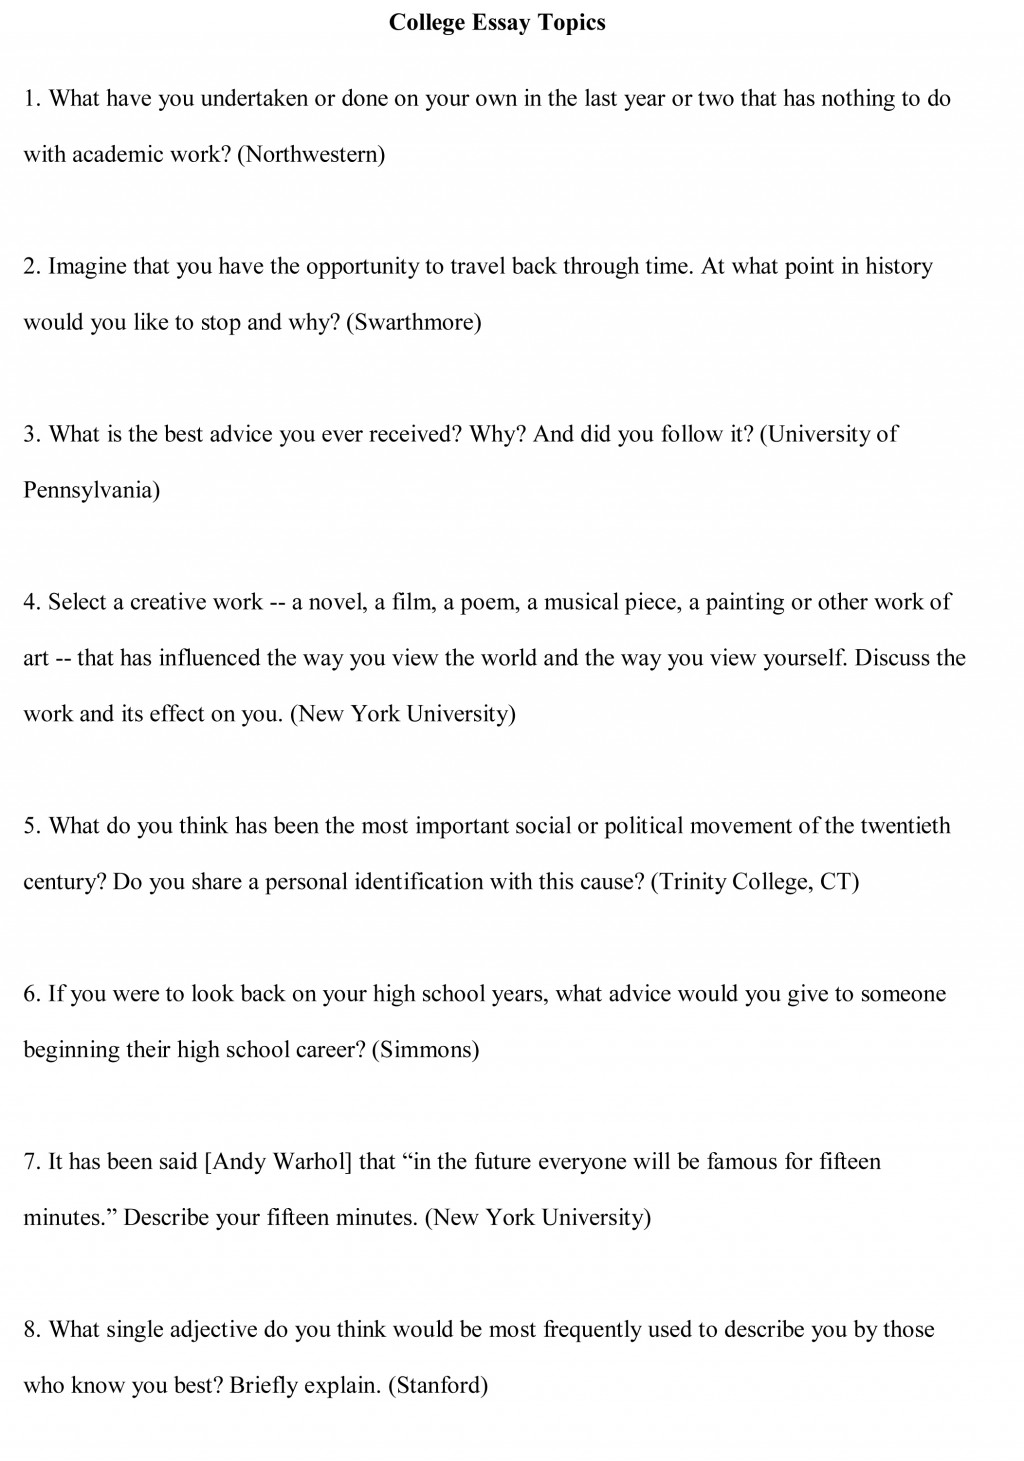 014 Essay Example Attention Getters For Essays College Topics Free Striking Scholarship Creative Good Large